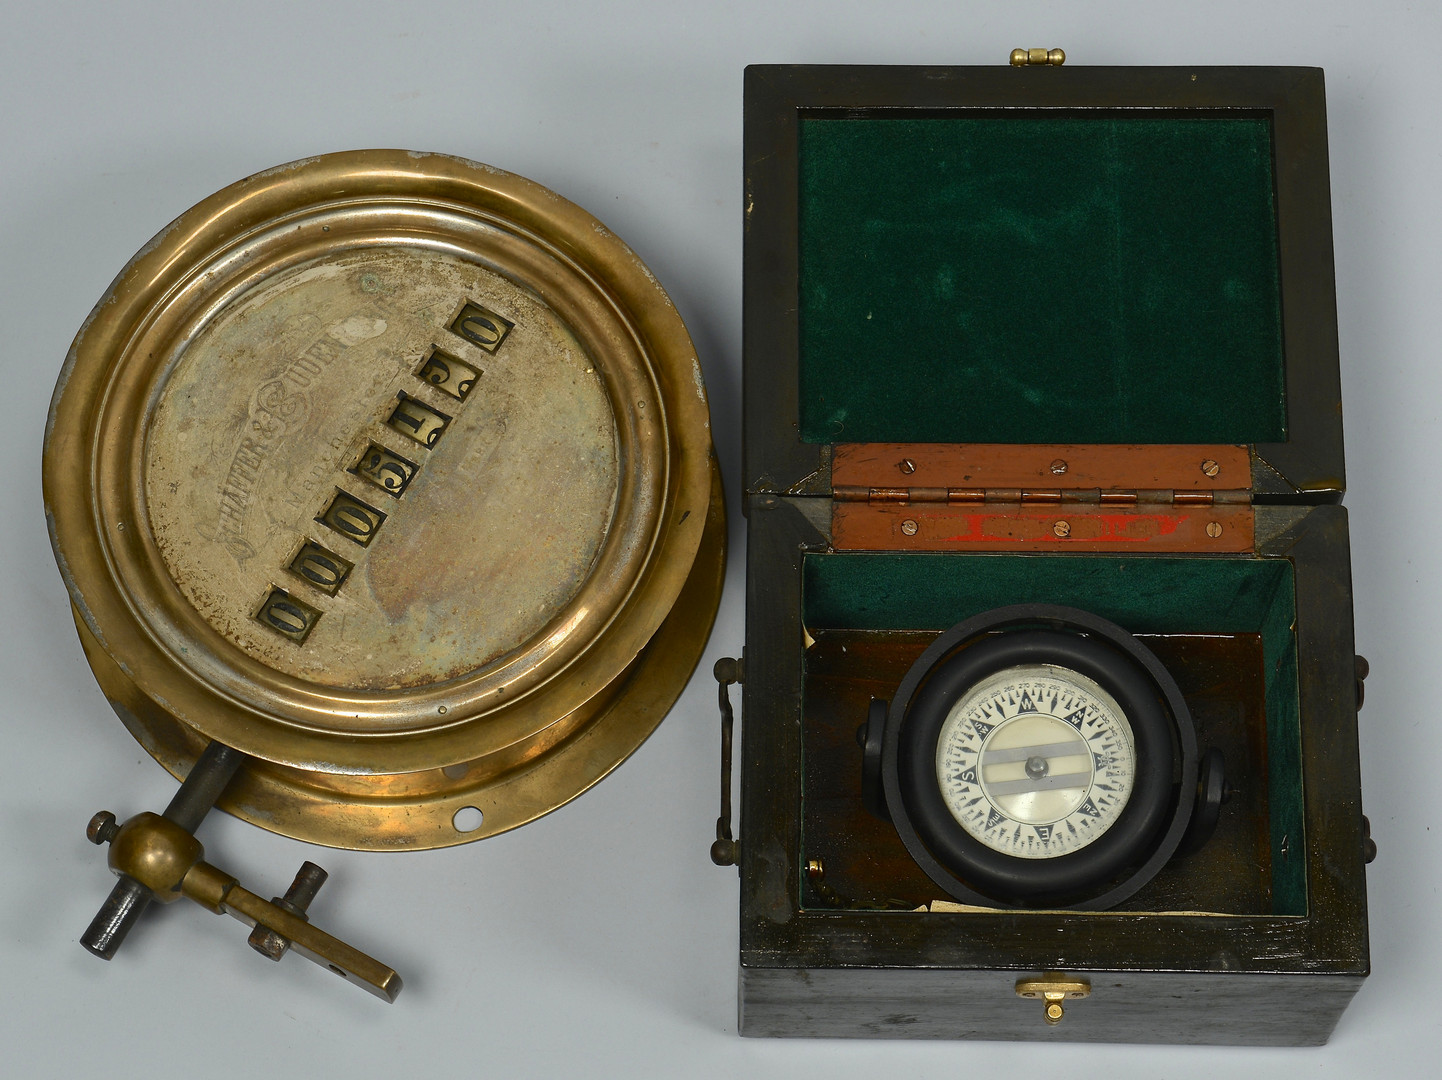 Lot 425: Grouping of Two Compasses and Counting Device